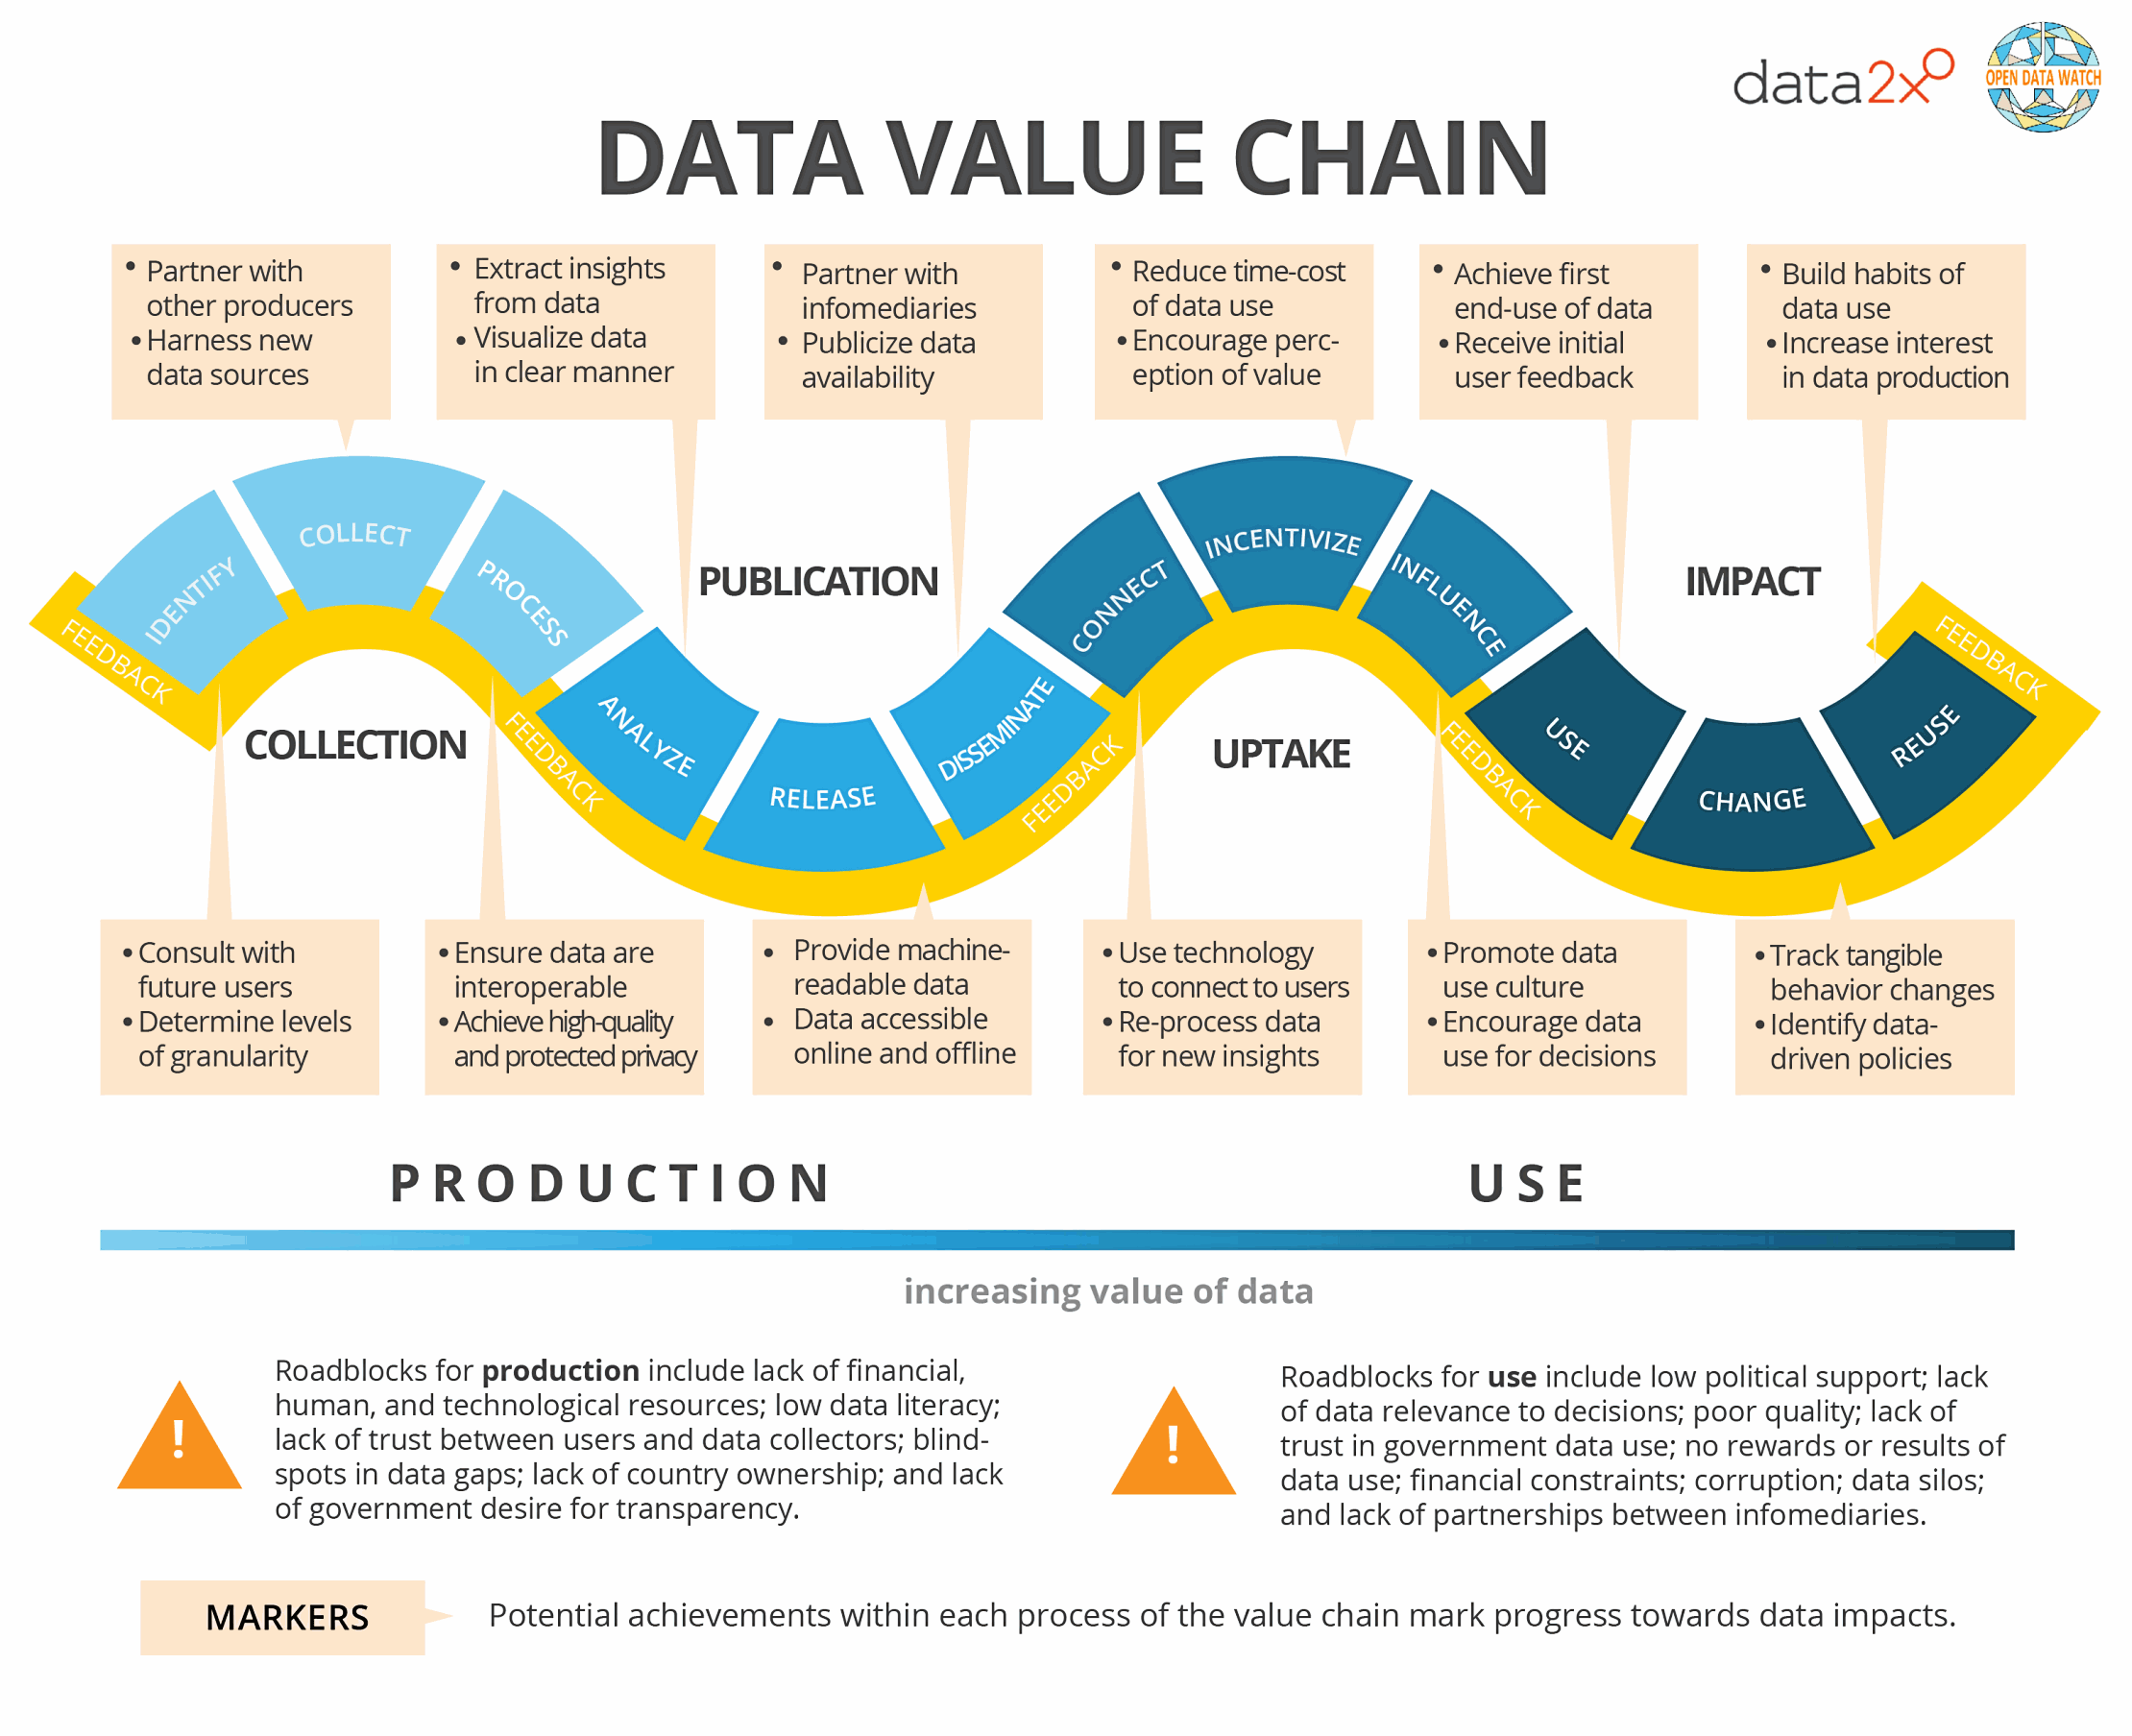 The Data Value Chain Moving From Production To Impact